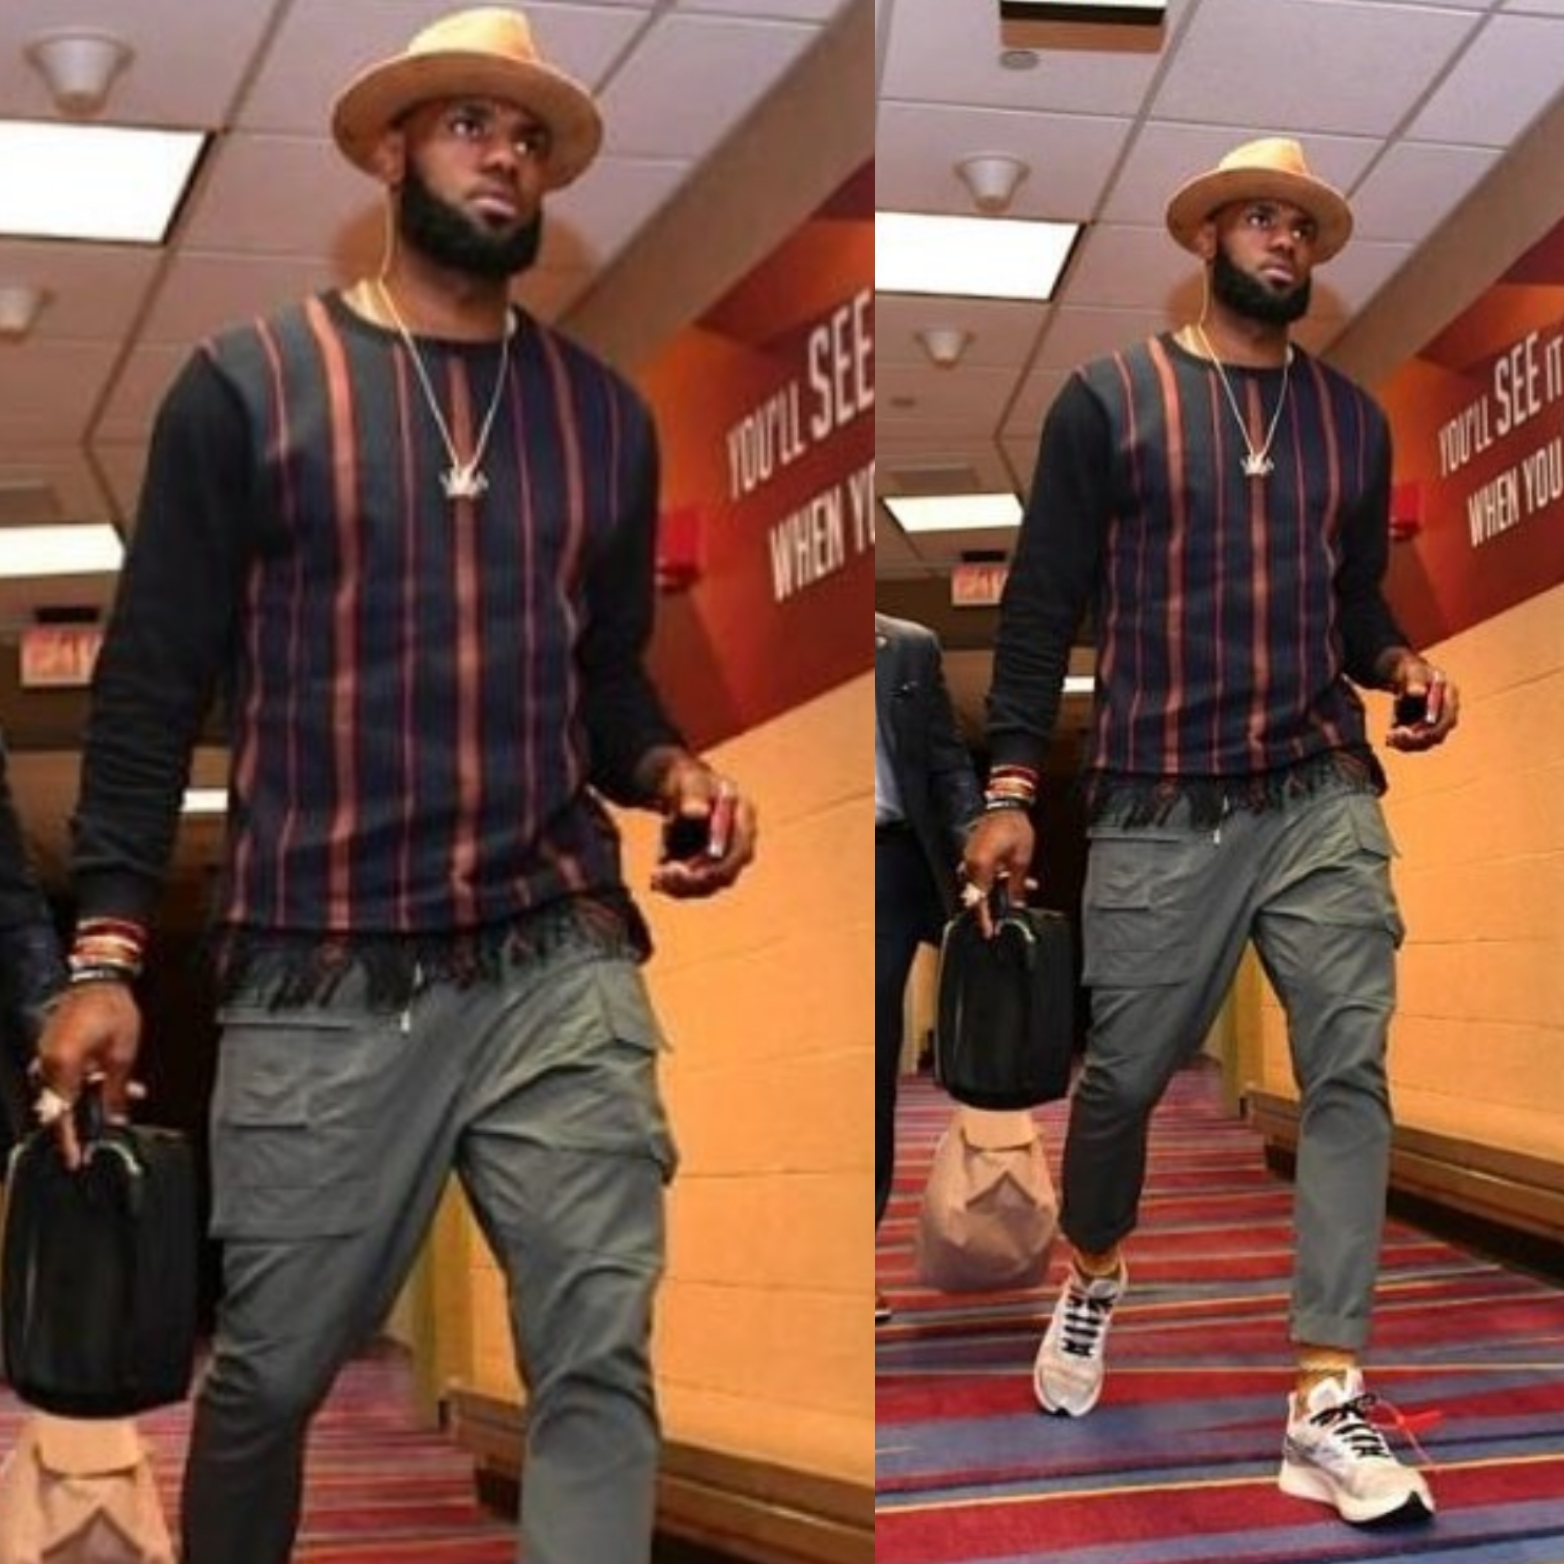 e570a7804b36 Lebron James arrived to hoop wearing a Dries Van Noten sweater and  Off-White x Nike Sneakers